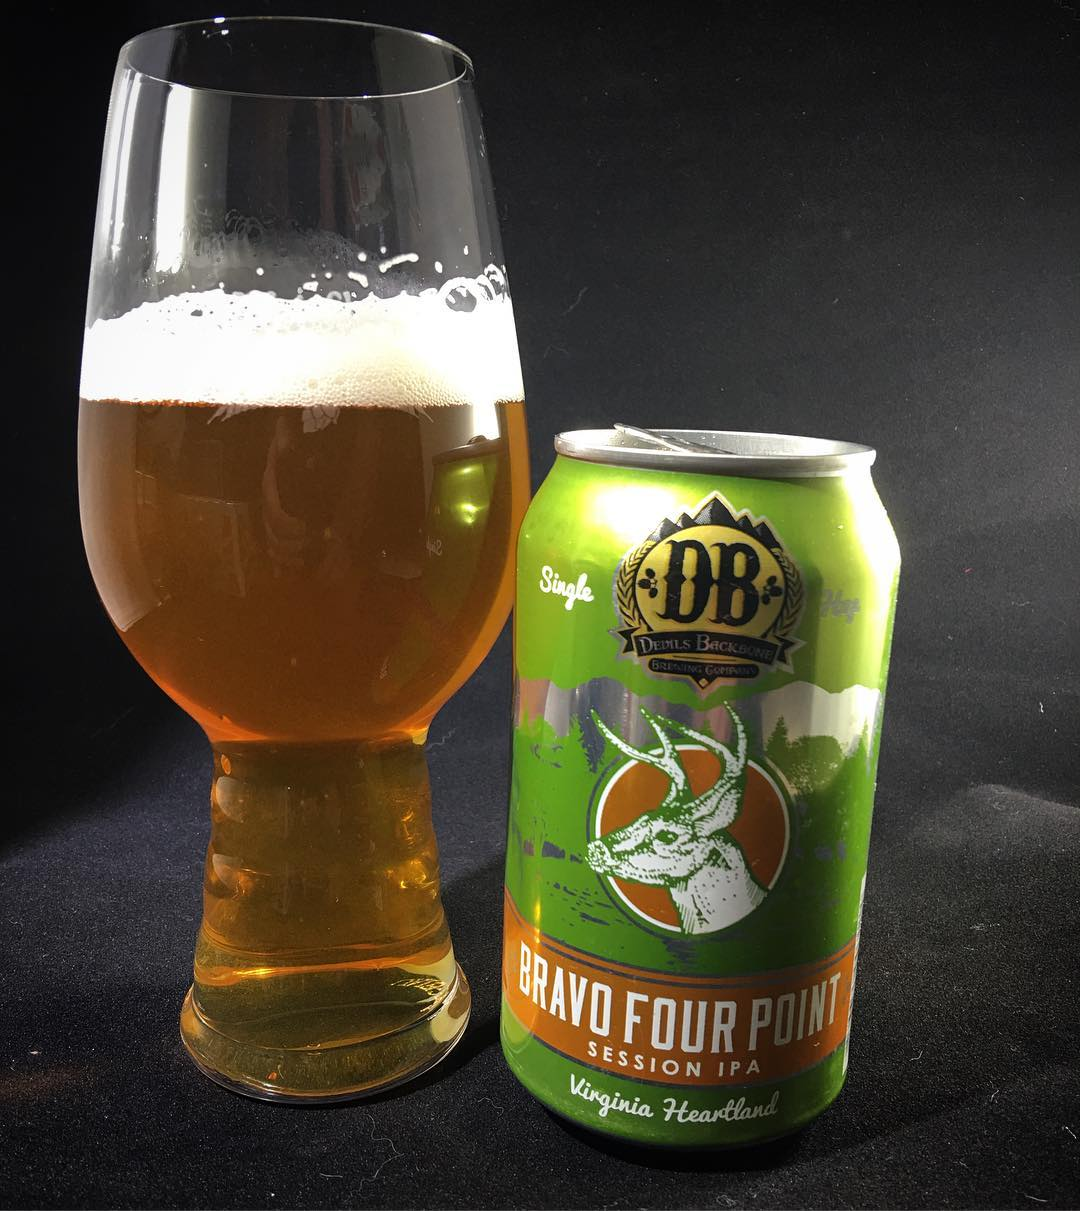 @devilsbackbonebrewingcompany Bravo Four Point Session IPA - interesting flavor in this. Not sure how I feel.